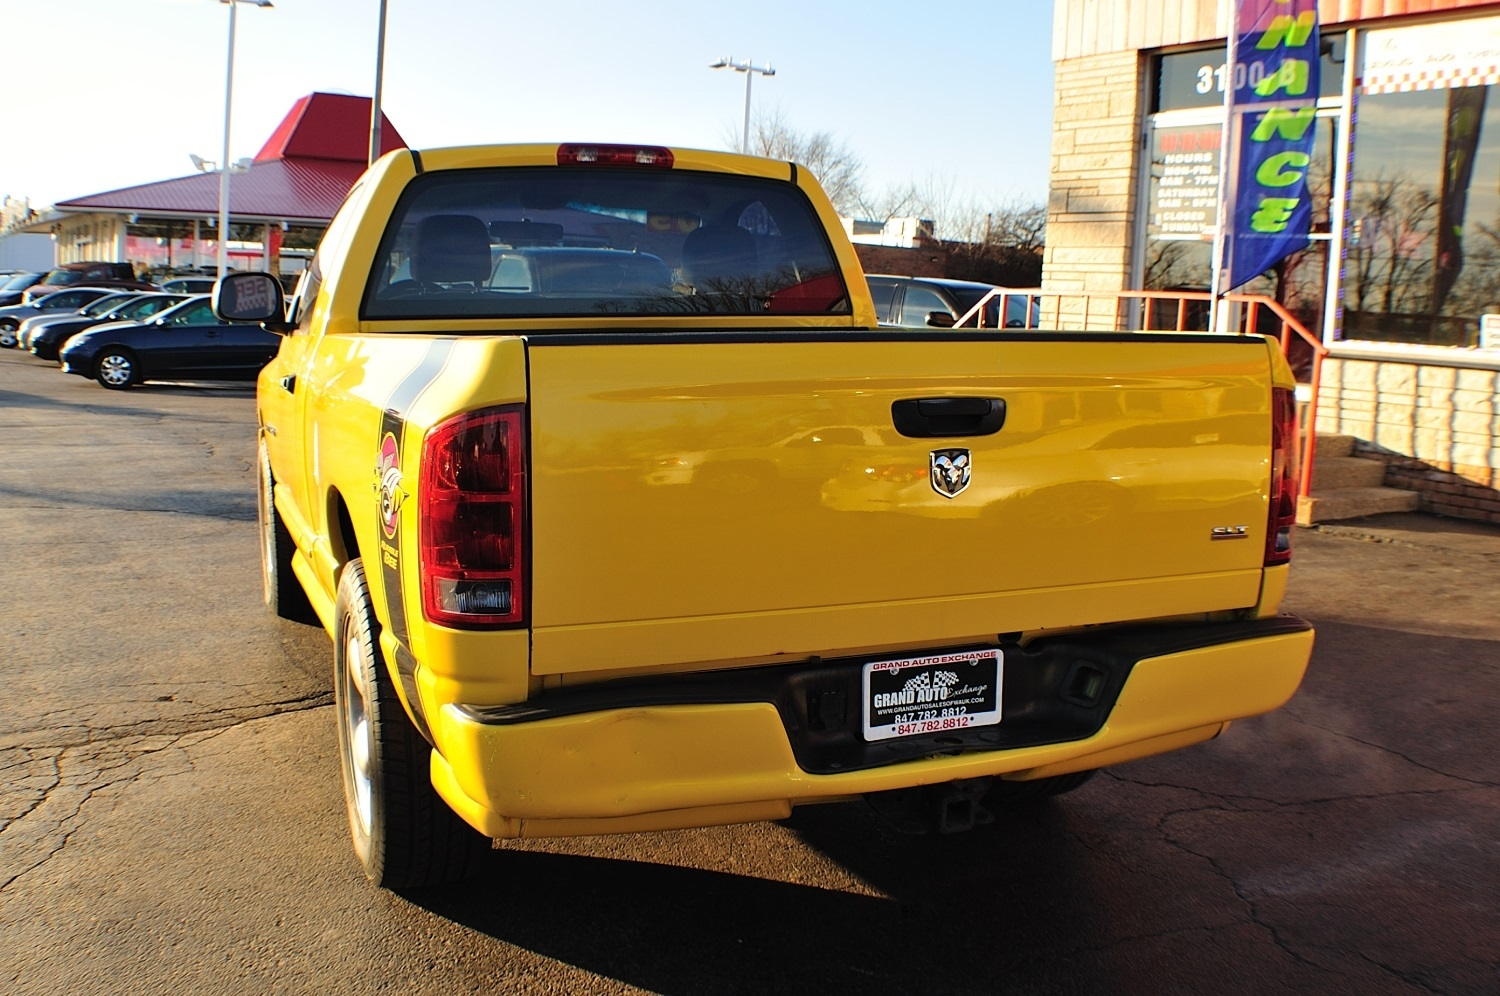 2005 Dodge Ram Yellow Rumble Bee used truck sale Buffalo Grove Deerfield Fox Lake Antioch